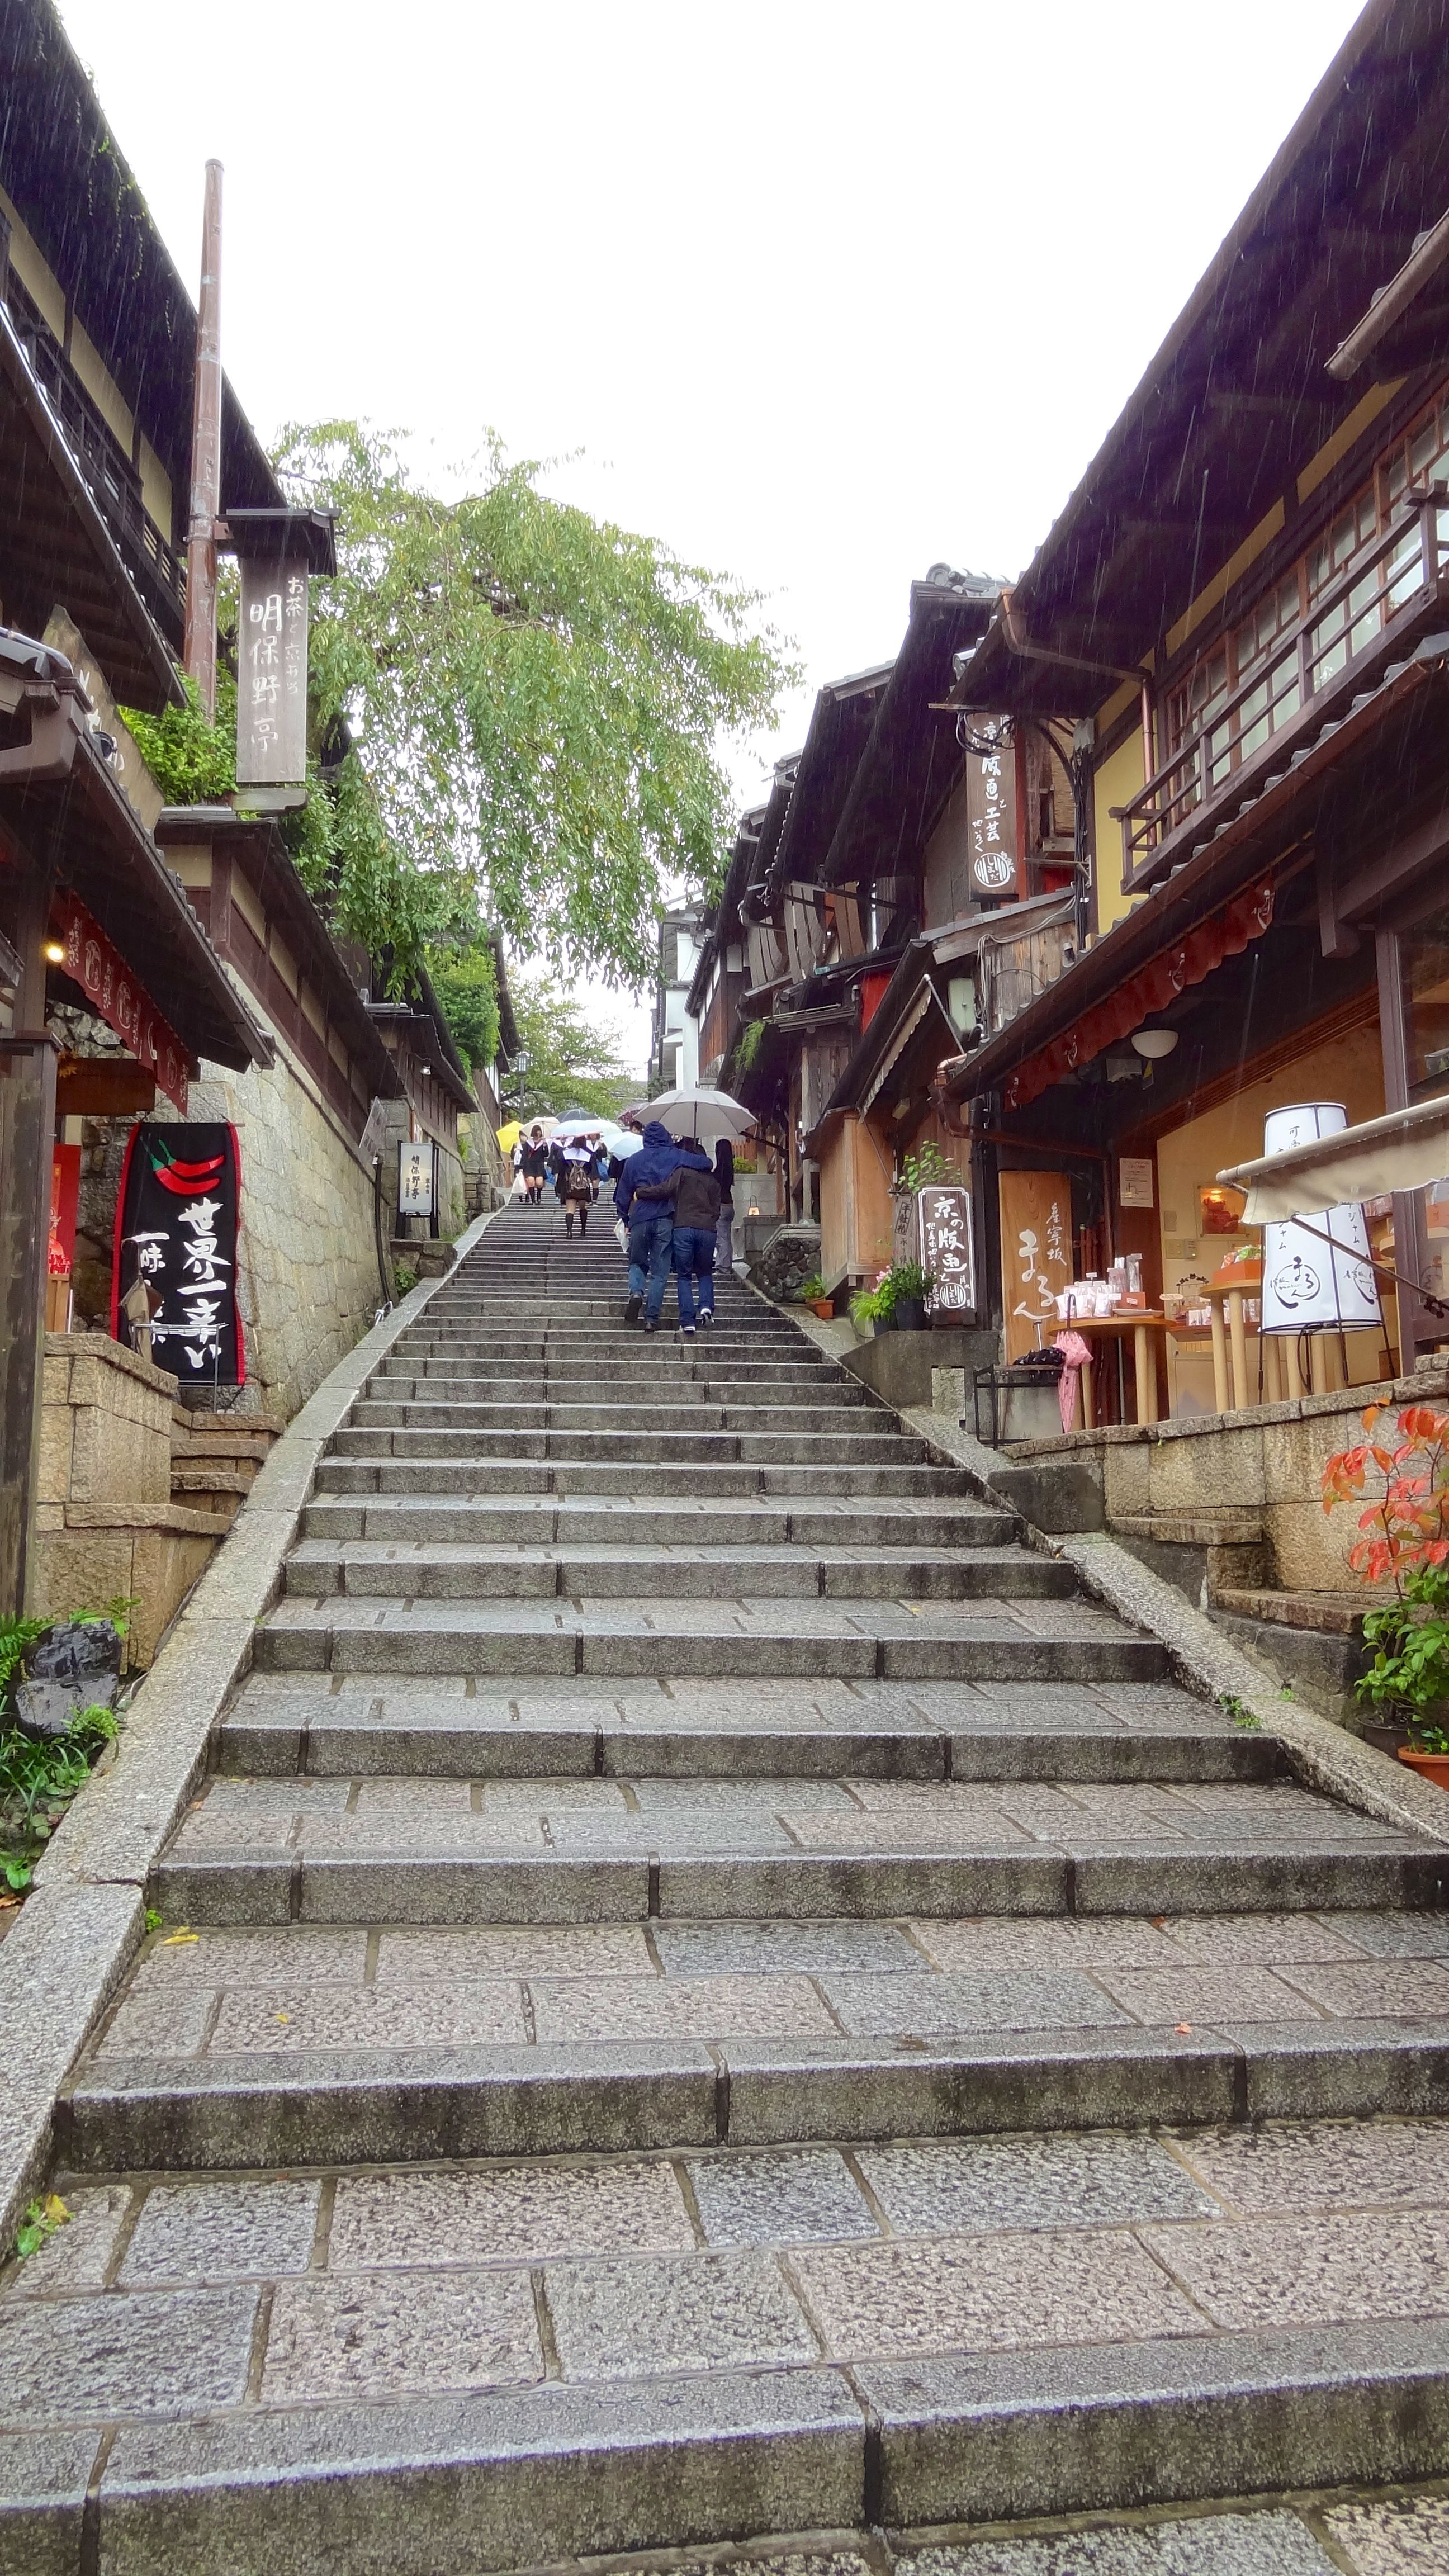 Kyoto's ancient Imperial shopping streets of Sannenzaka and Ninenzaka are lined with traditional shops and wooden houses.